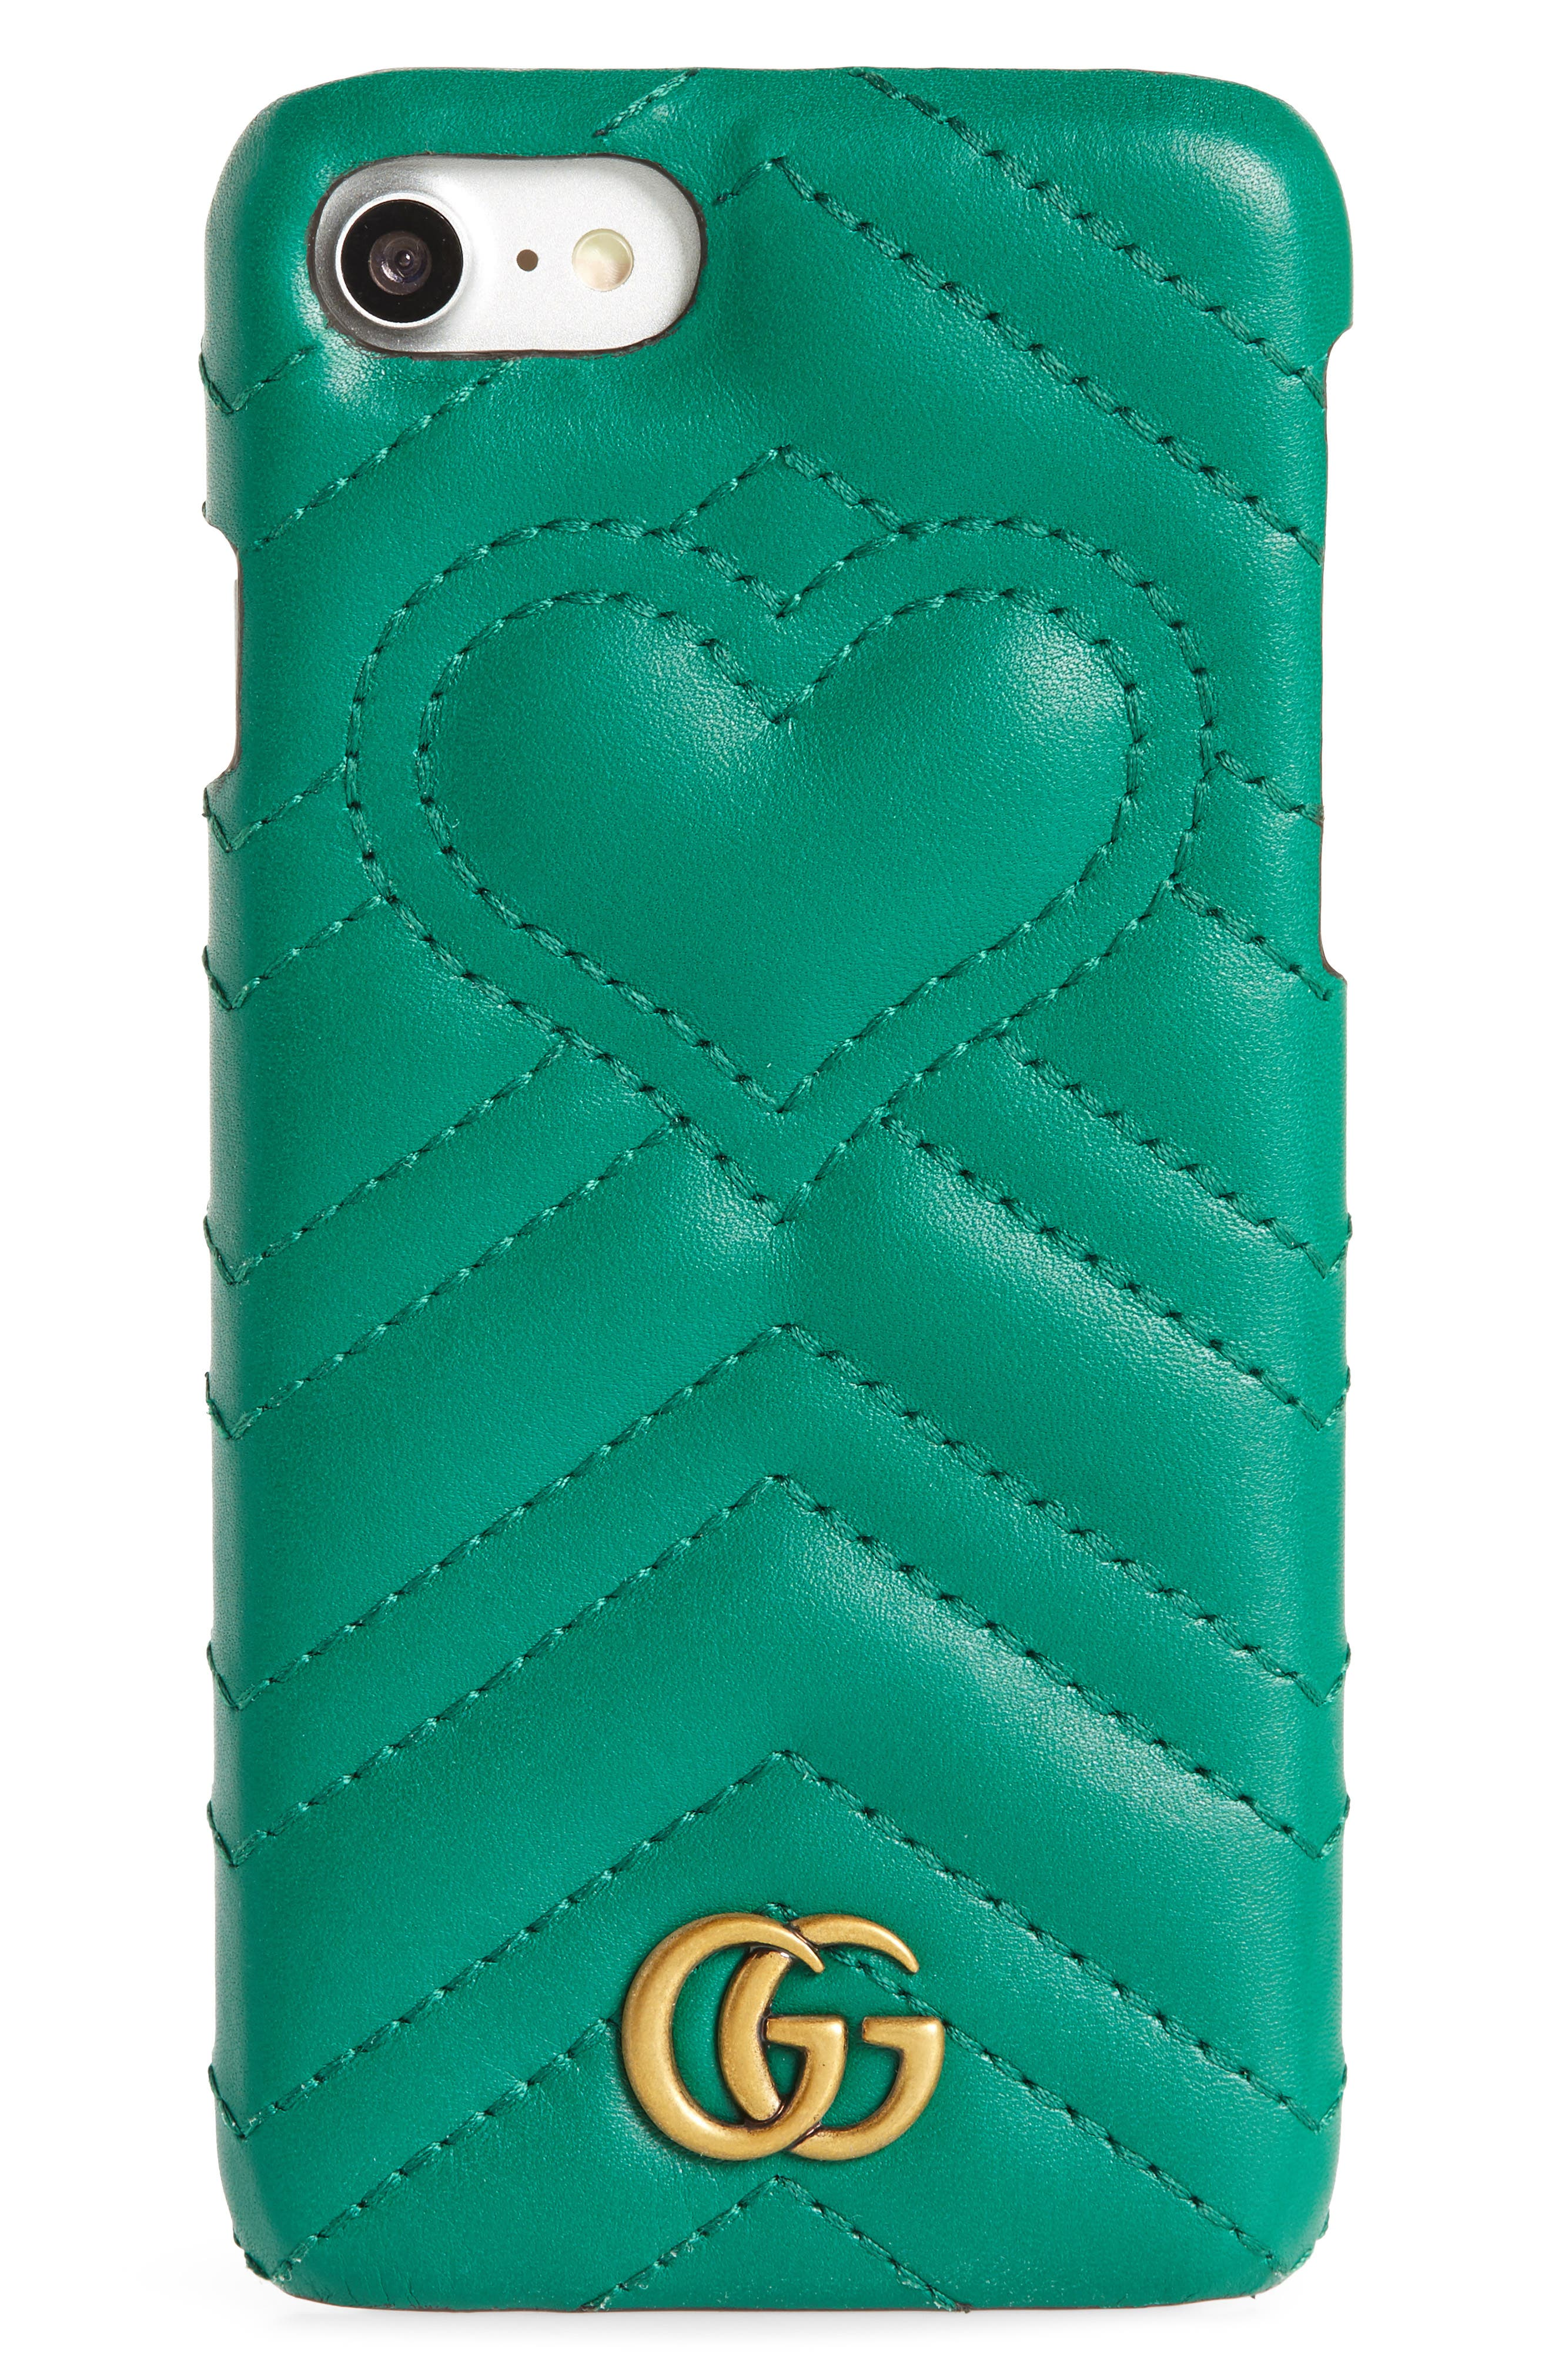 GG Marmont Leather iPhone 7 Case,                         Main,                         color, 302